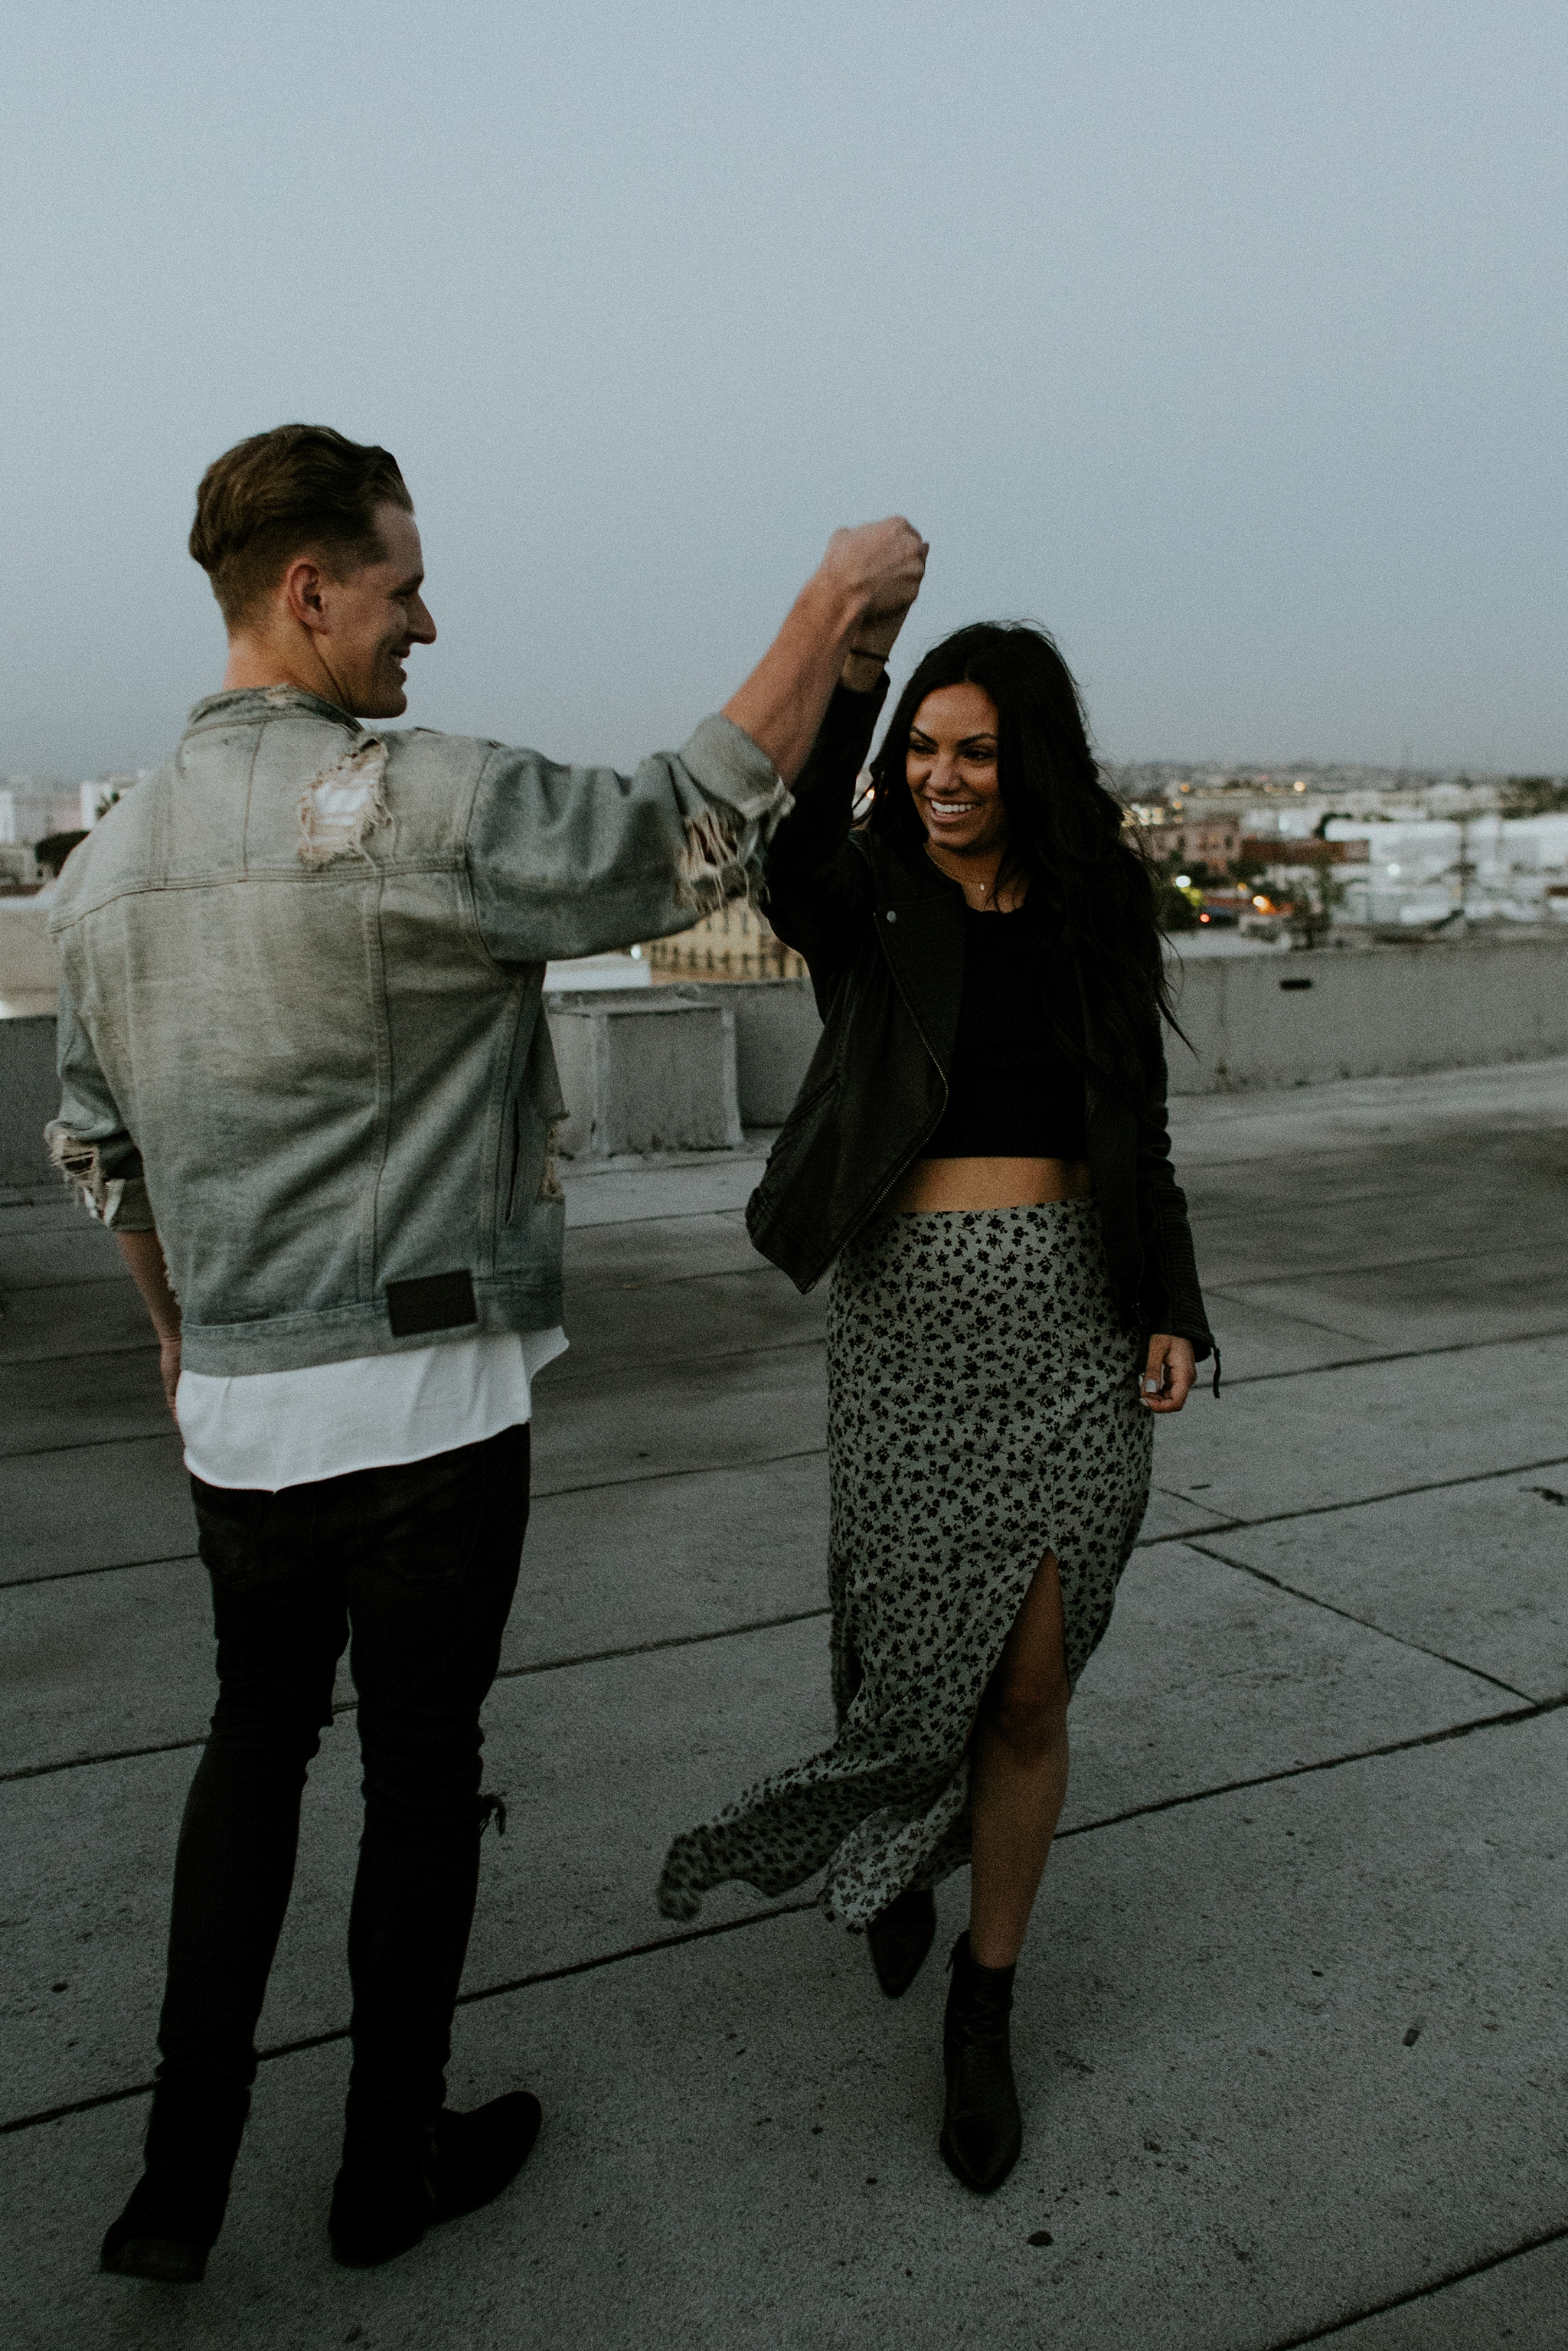 DTLA Rooftop Engagement Session by Trin Jensen Photography  - Los Angeles Wedding Photographer_0048.jpg